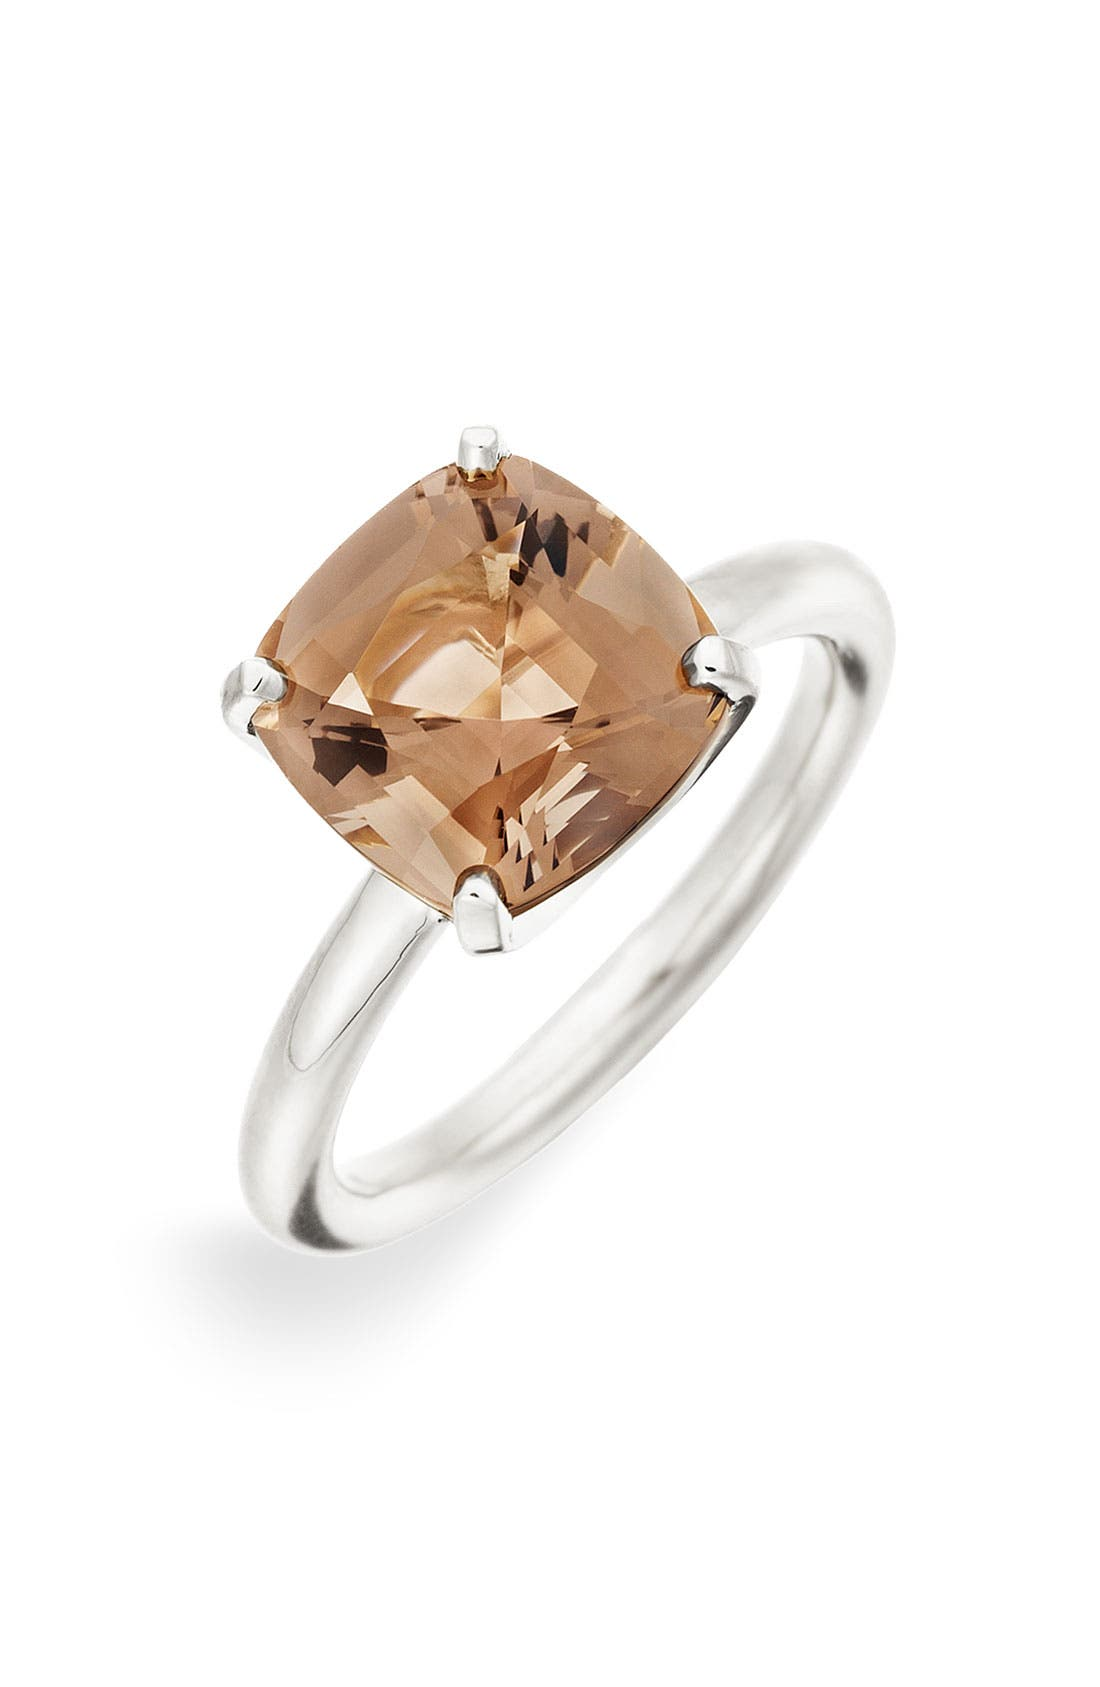 'Twinkle' Cushion Ring,                         Main,                         color, 020